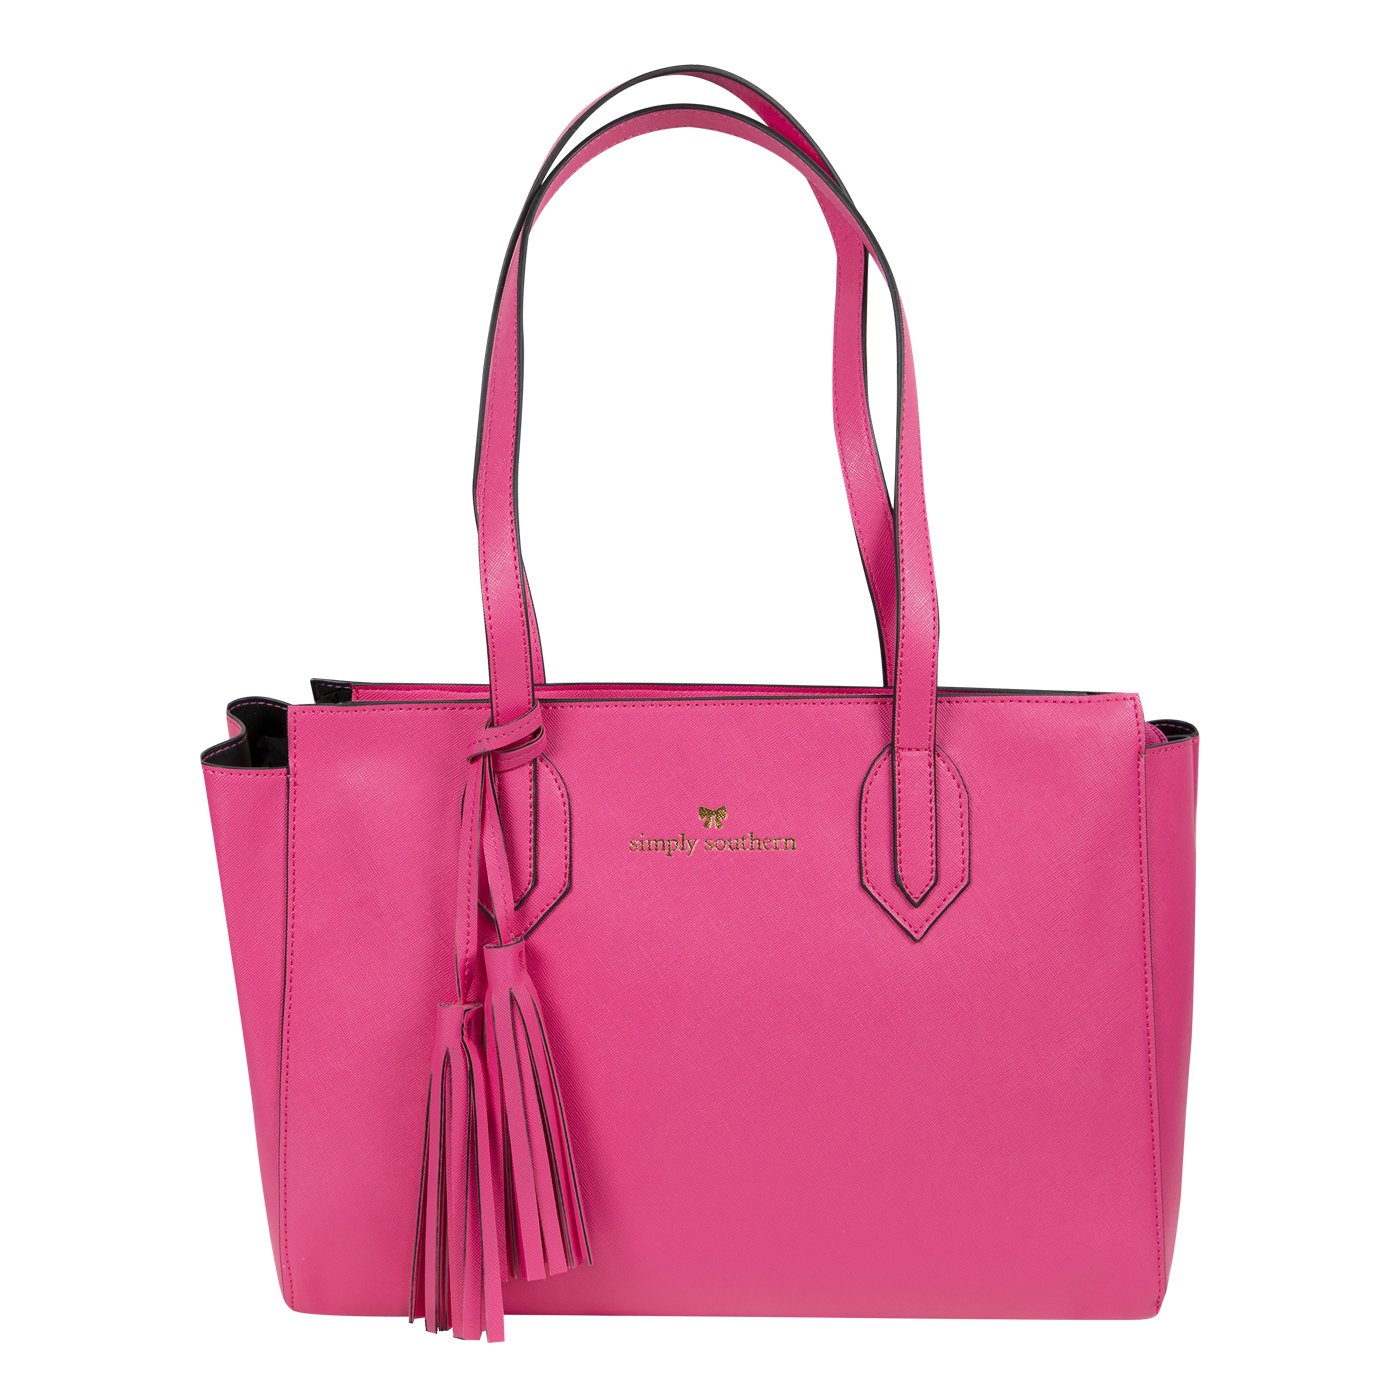 Simply Southern Tees Pink Leather Purse